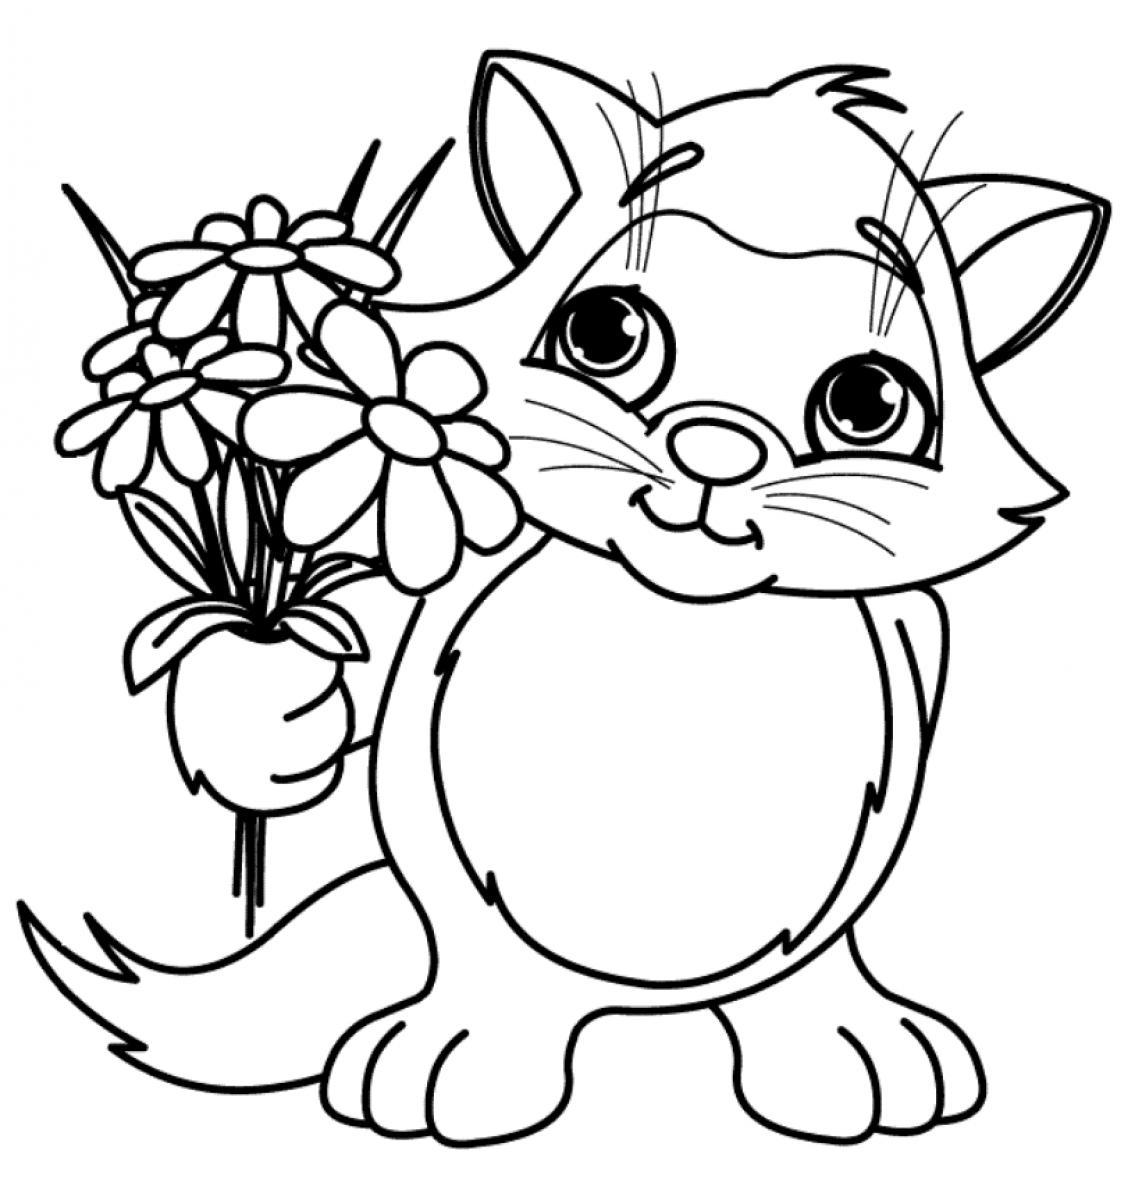 picture of flowers to colour spring flower coloring pages to download and print for free of picture to flowers colour